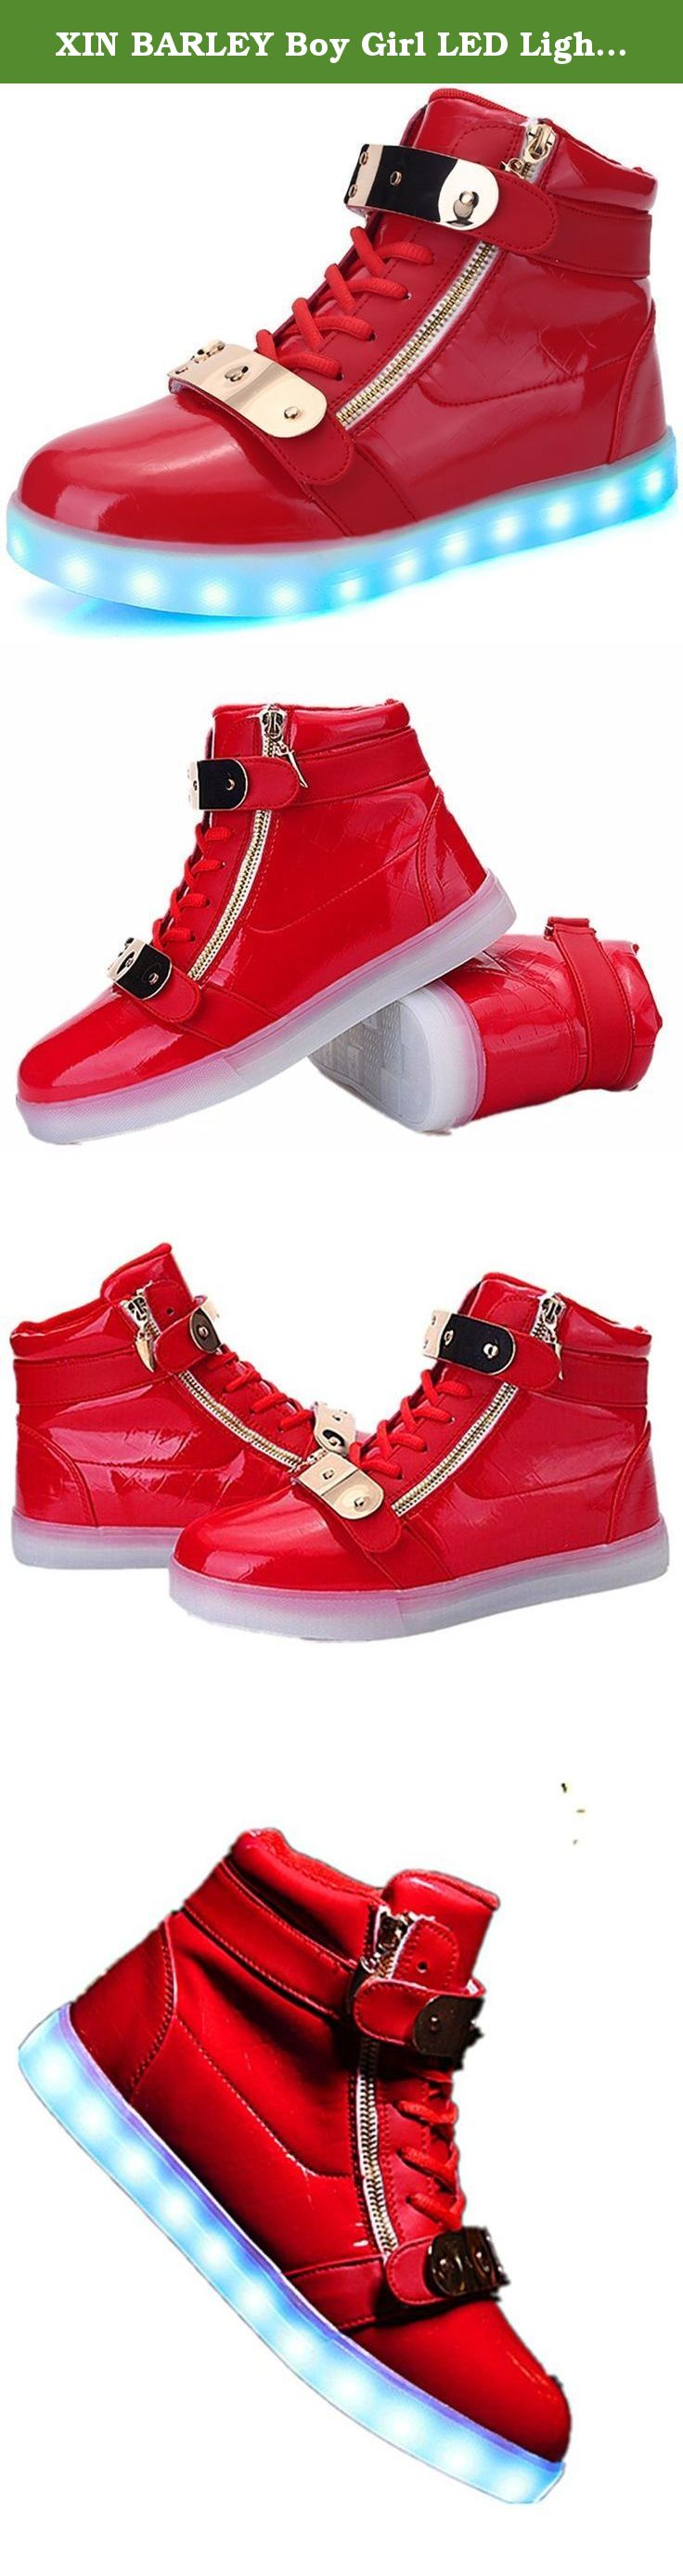 red32 Toddler//Little Kid//Big Kid XIN BARLEY Boy Girl LED Light Up Shoes Street Style Gold Tone Zip Sneakers